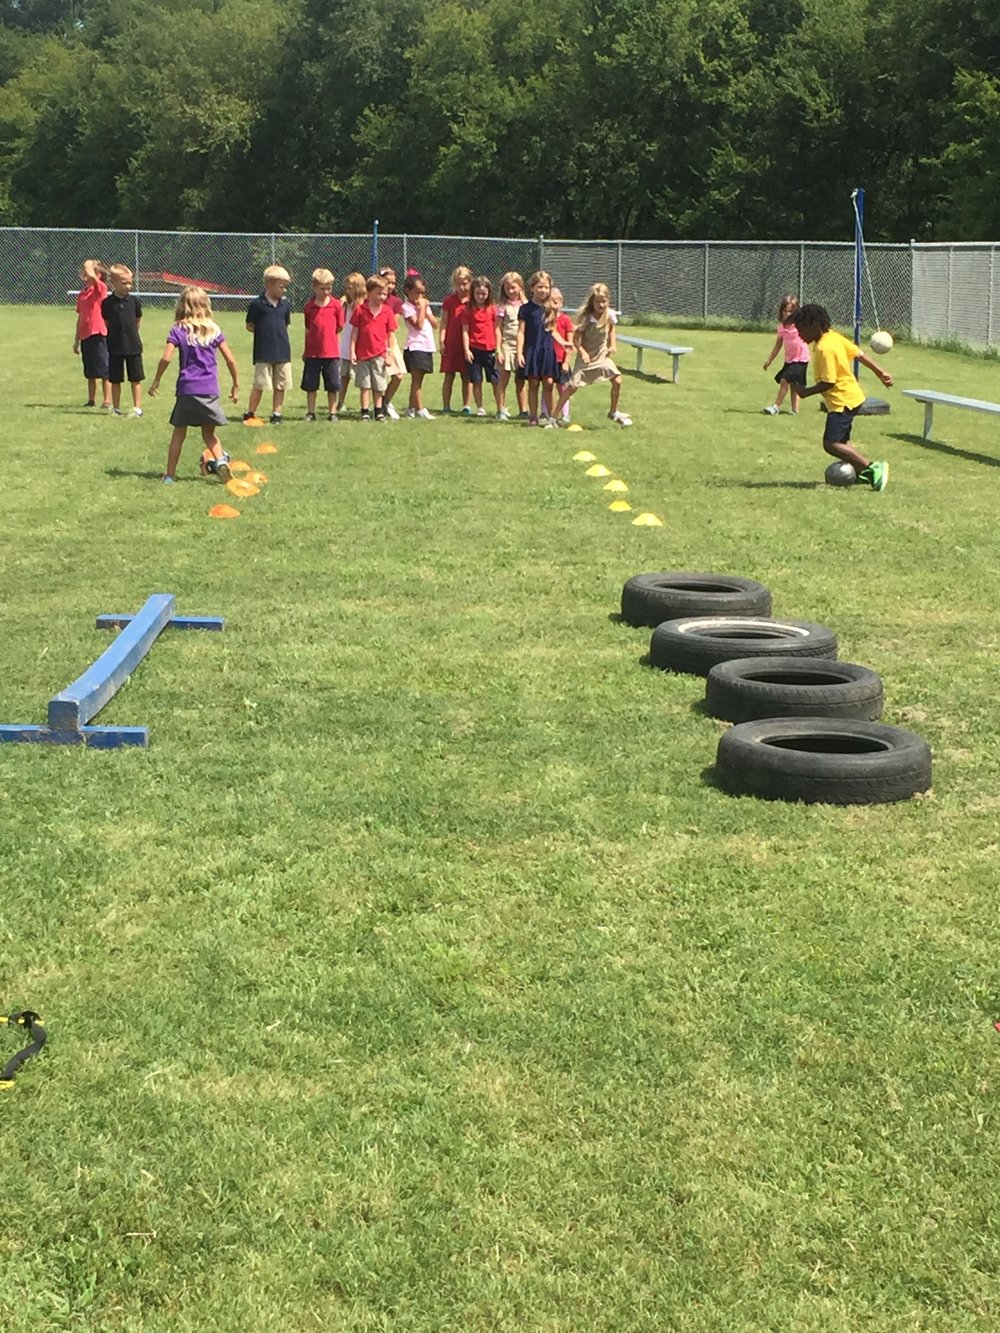 Students work their way through an obstacle course relay race in Coordination and Balance as their classmates cheer them on and watch to see who wins.